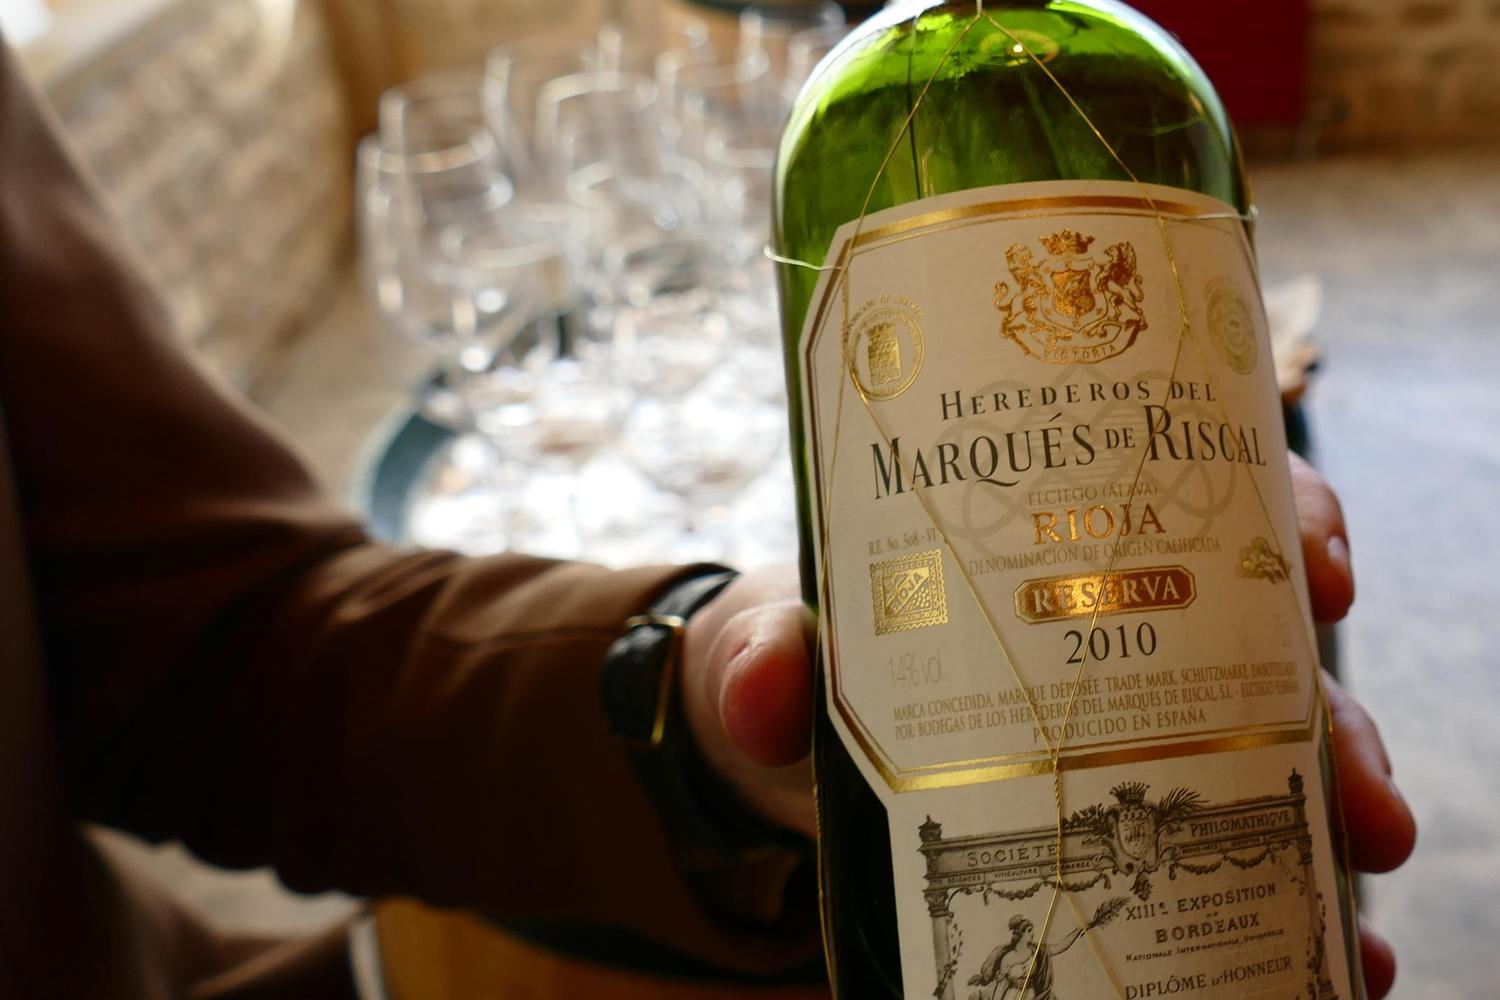 Bottle of Marques de Riscal rioja